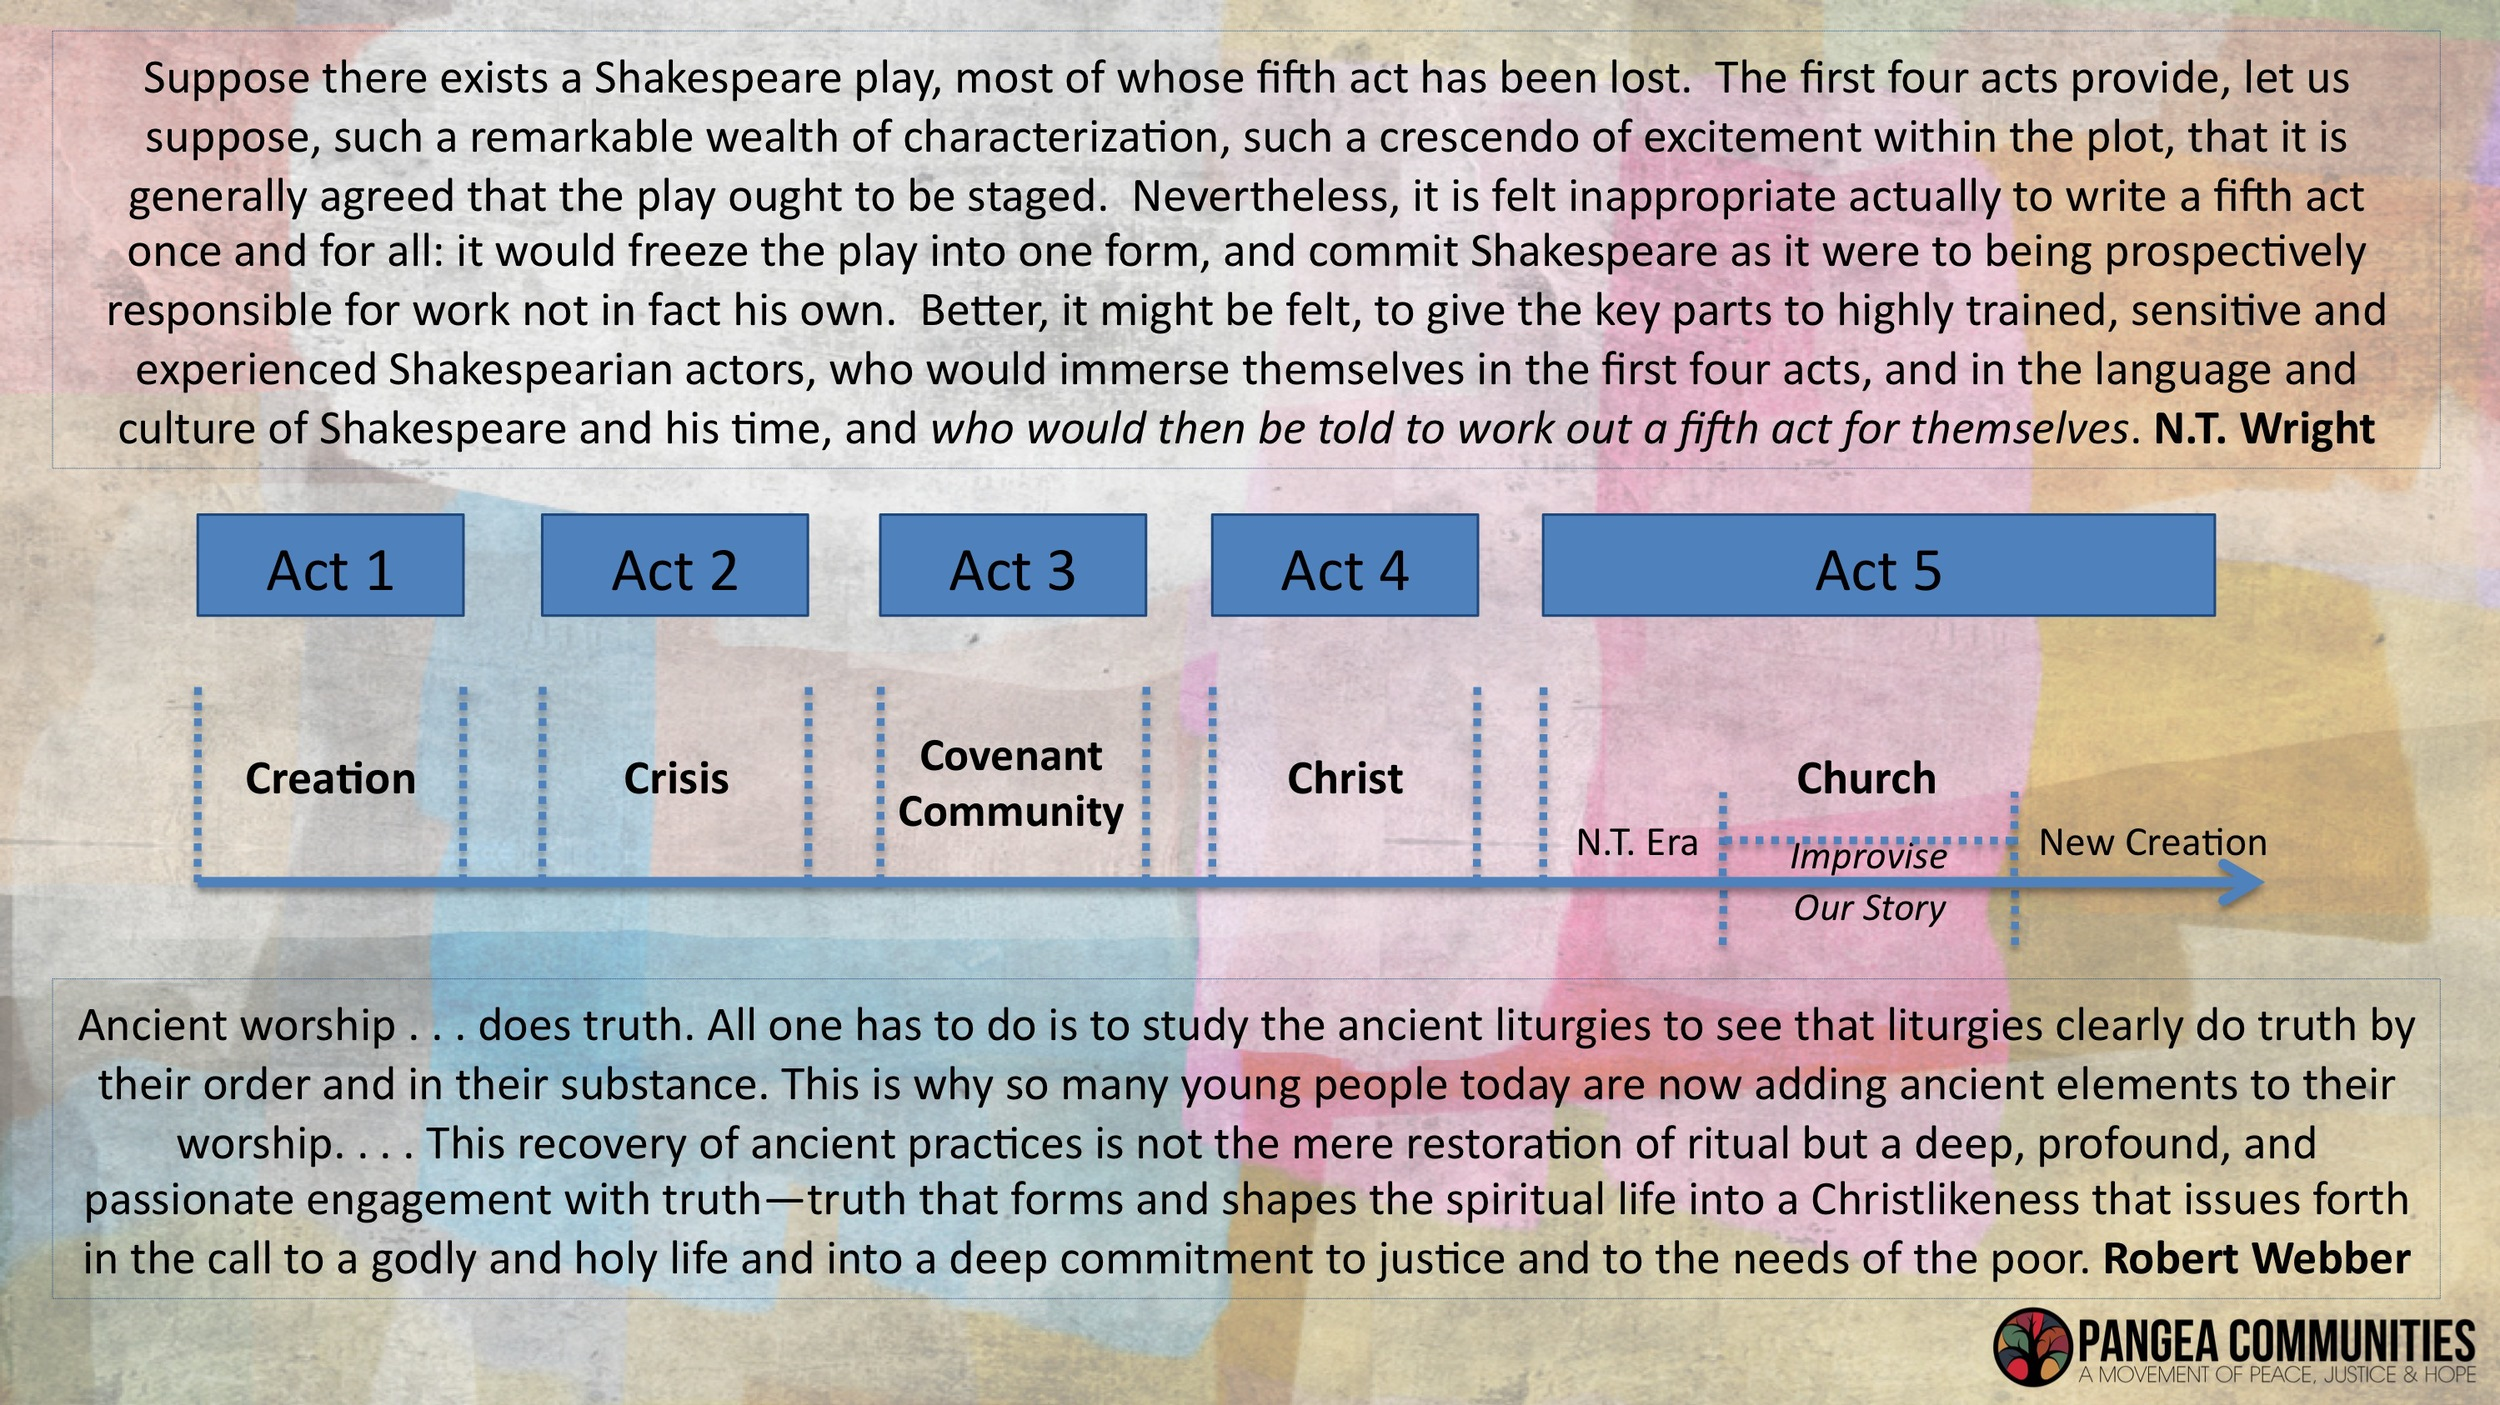 This is the slide we used during the portion of the talk discussing the biblical story.